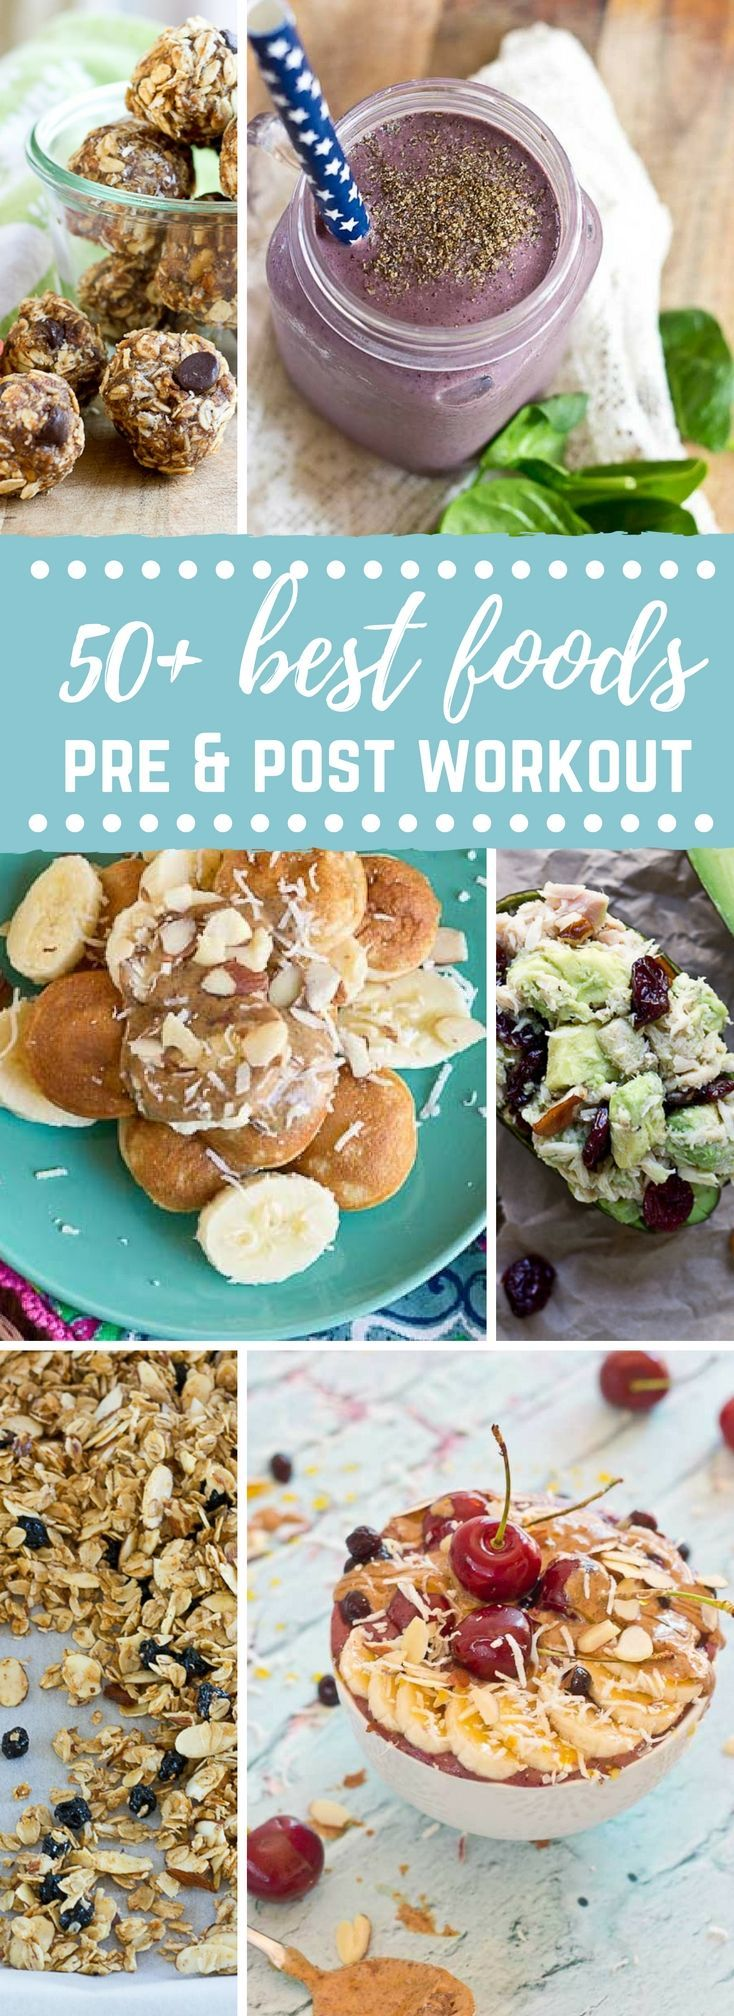 50+ Best Foods to Eat Before and After a Workout After